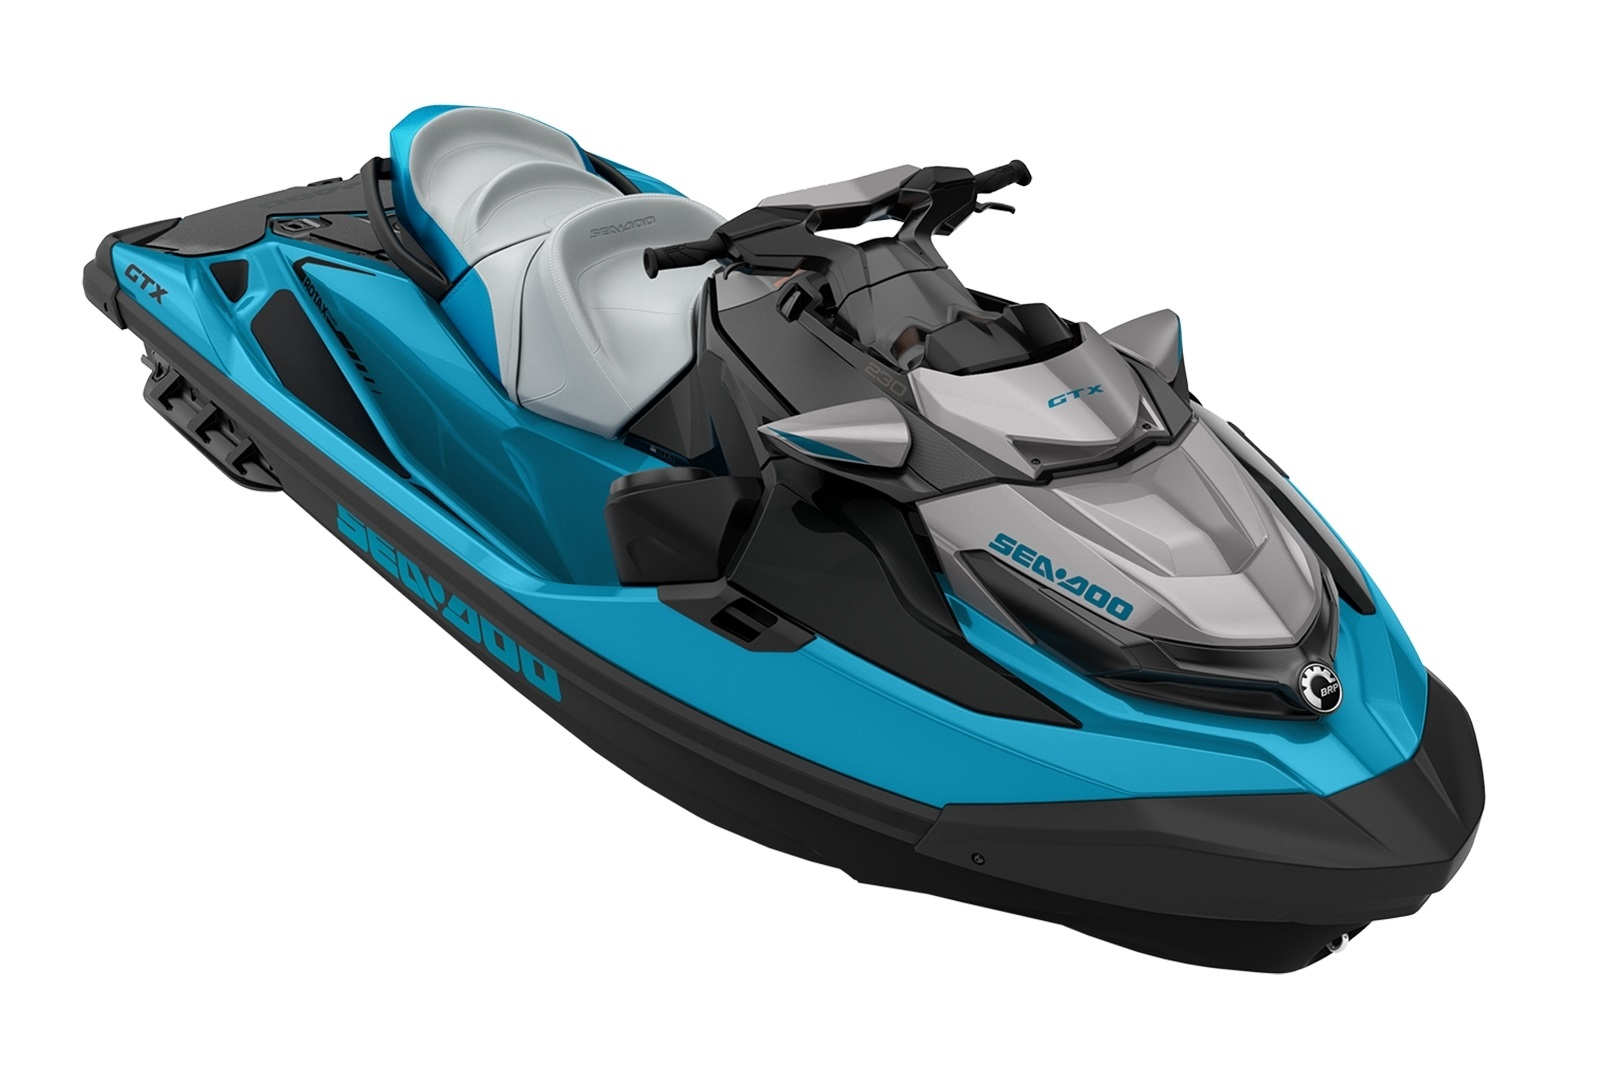 Sea Doo GTX STD 3-up 170hp modrá metalíza